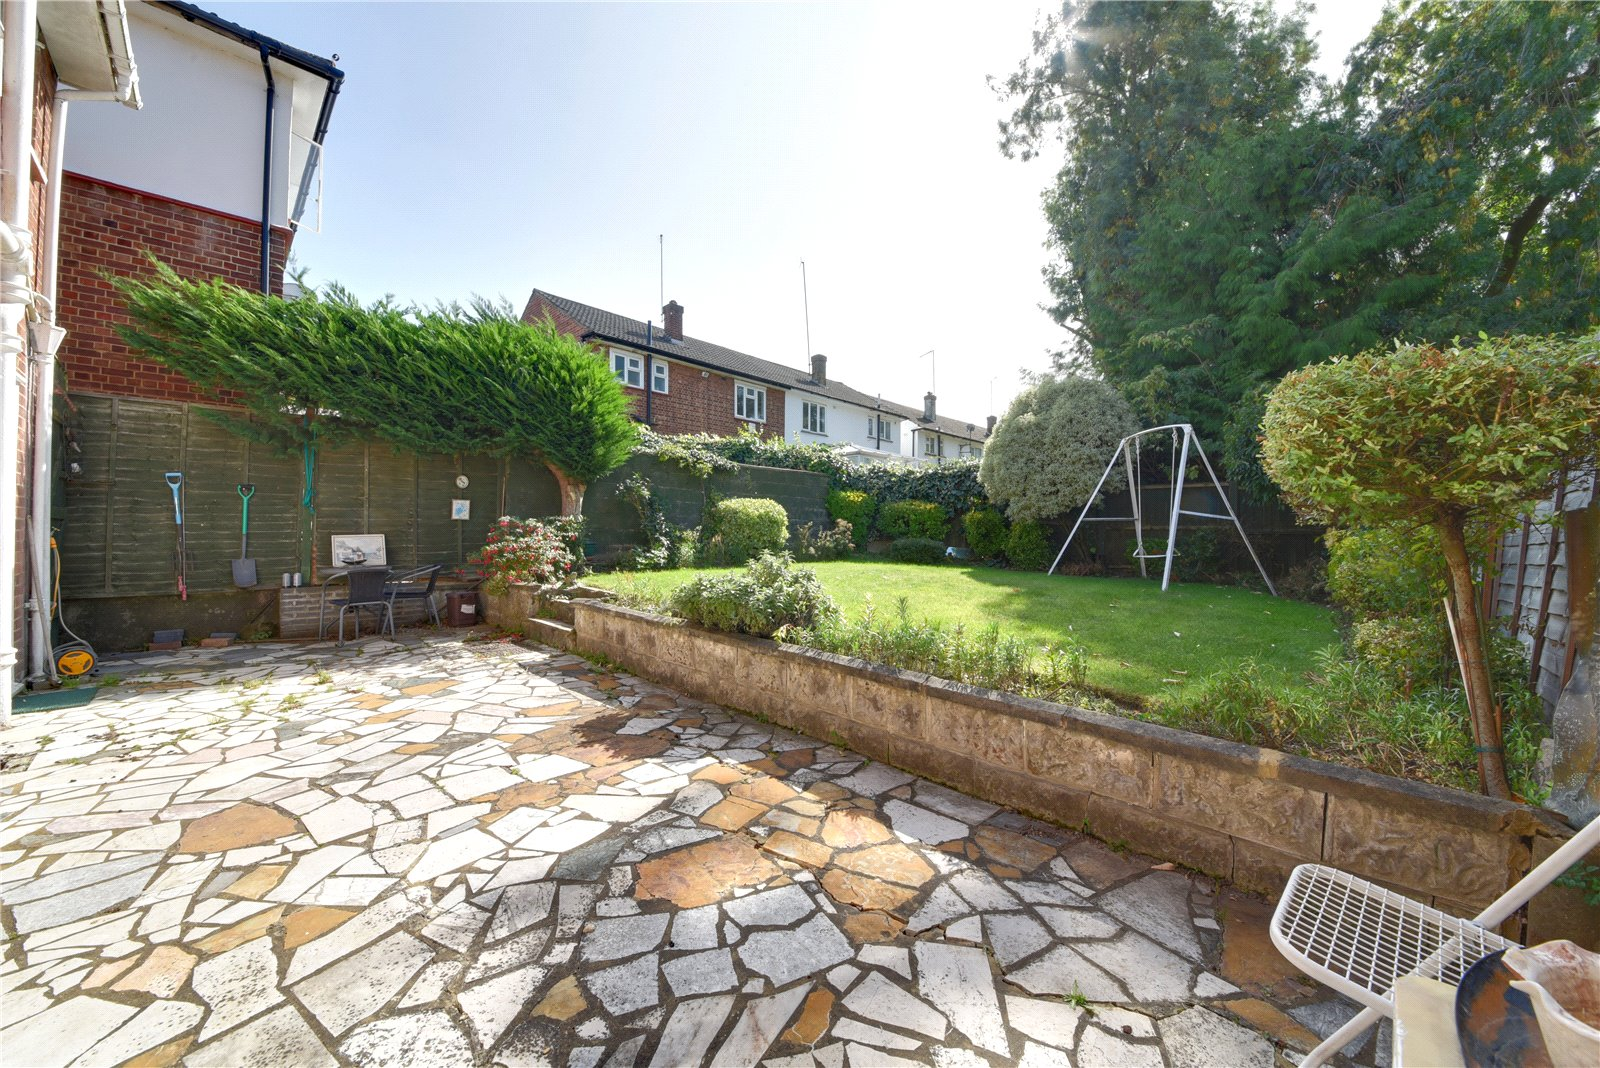 3 bed house for sale in West Finchley, N3 1PB  - Property Image 5